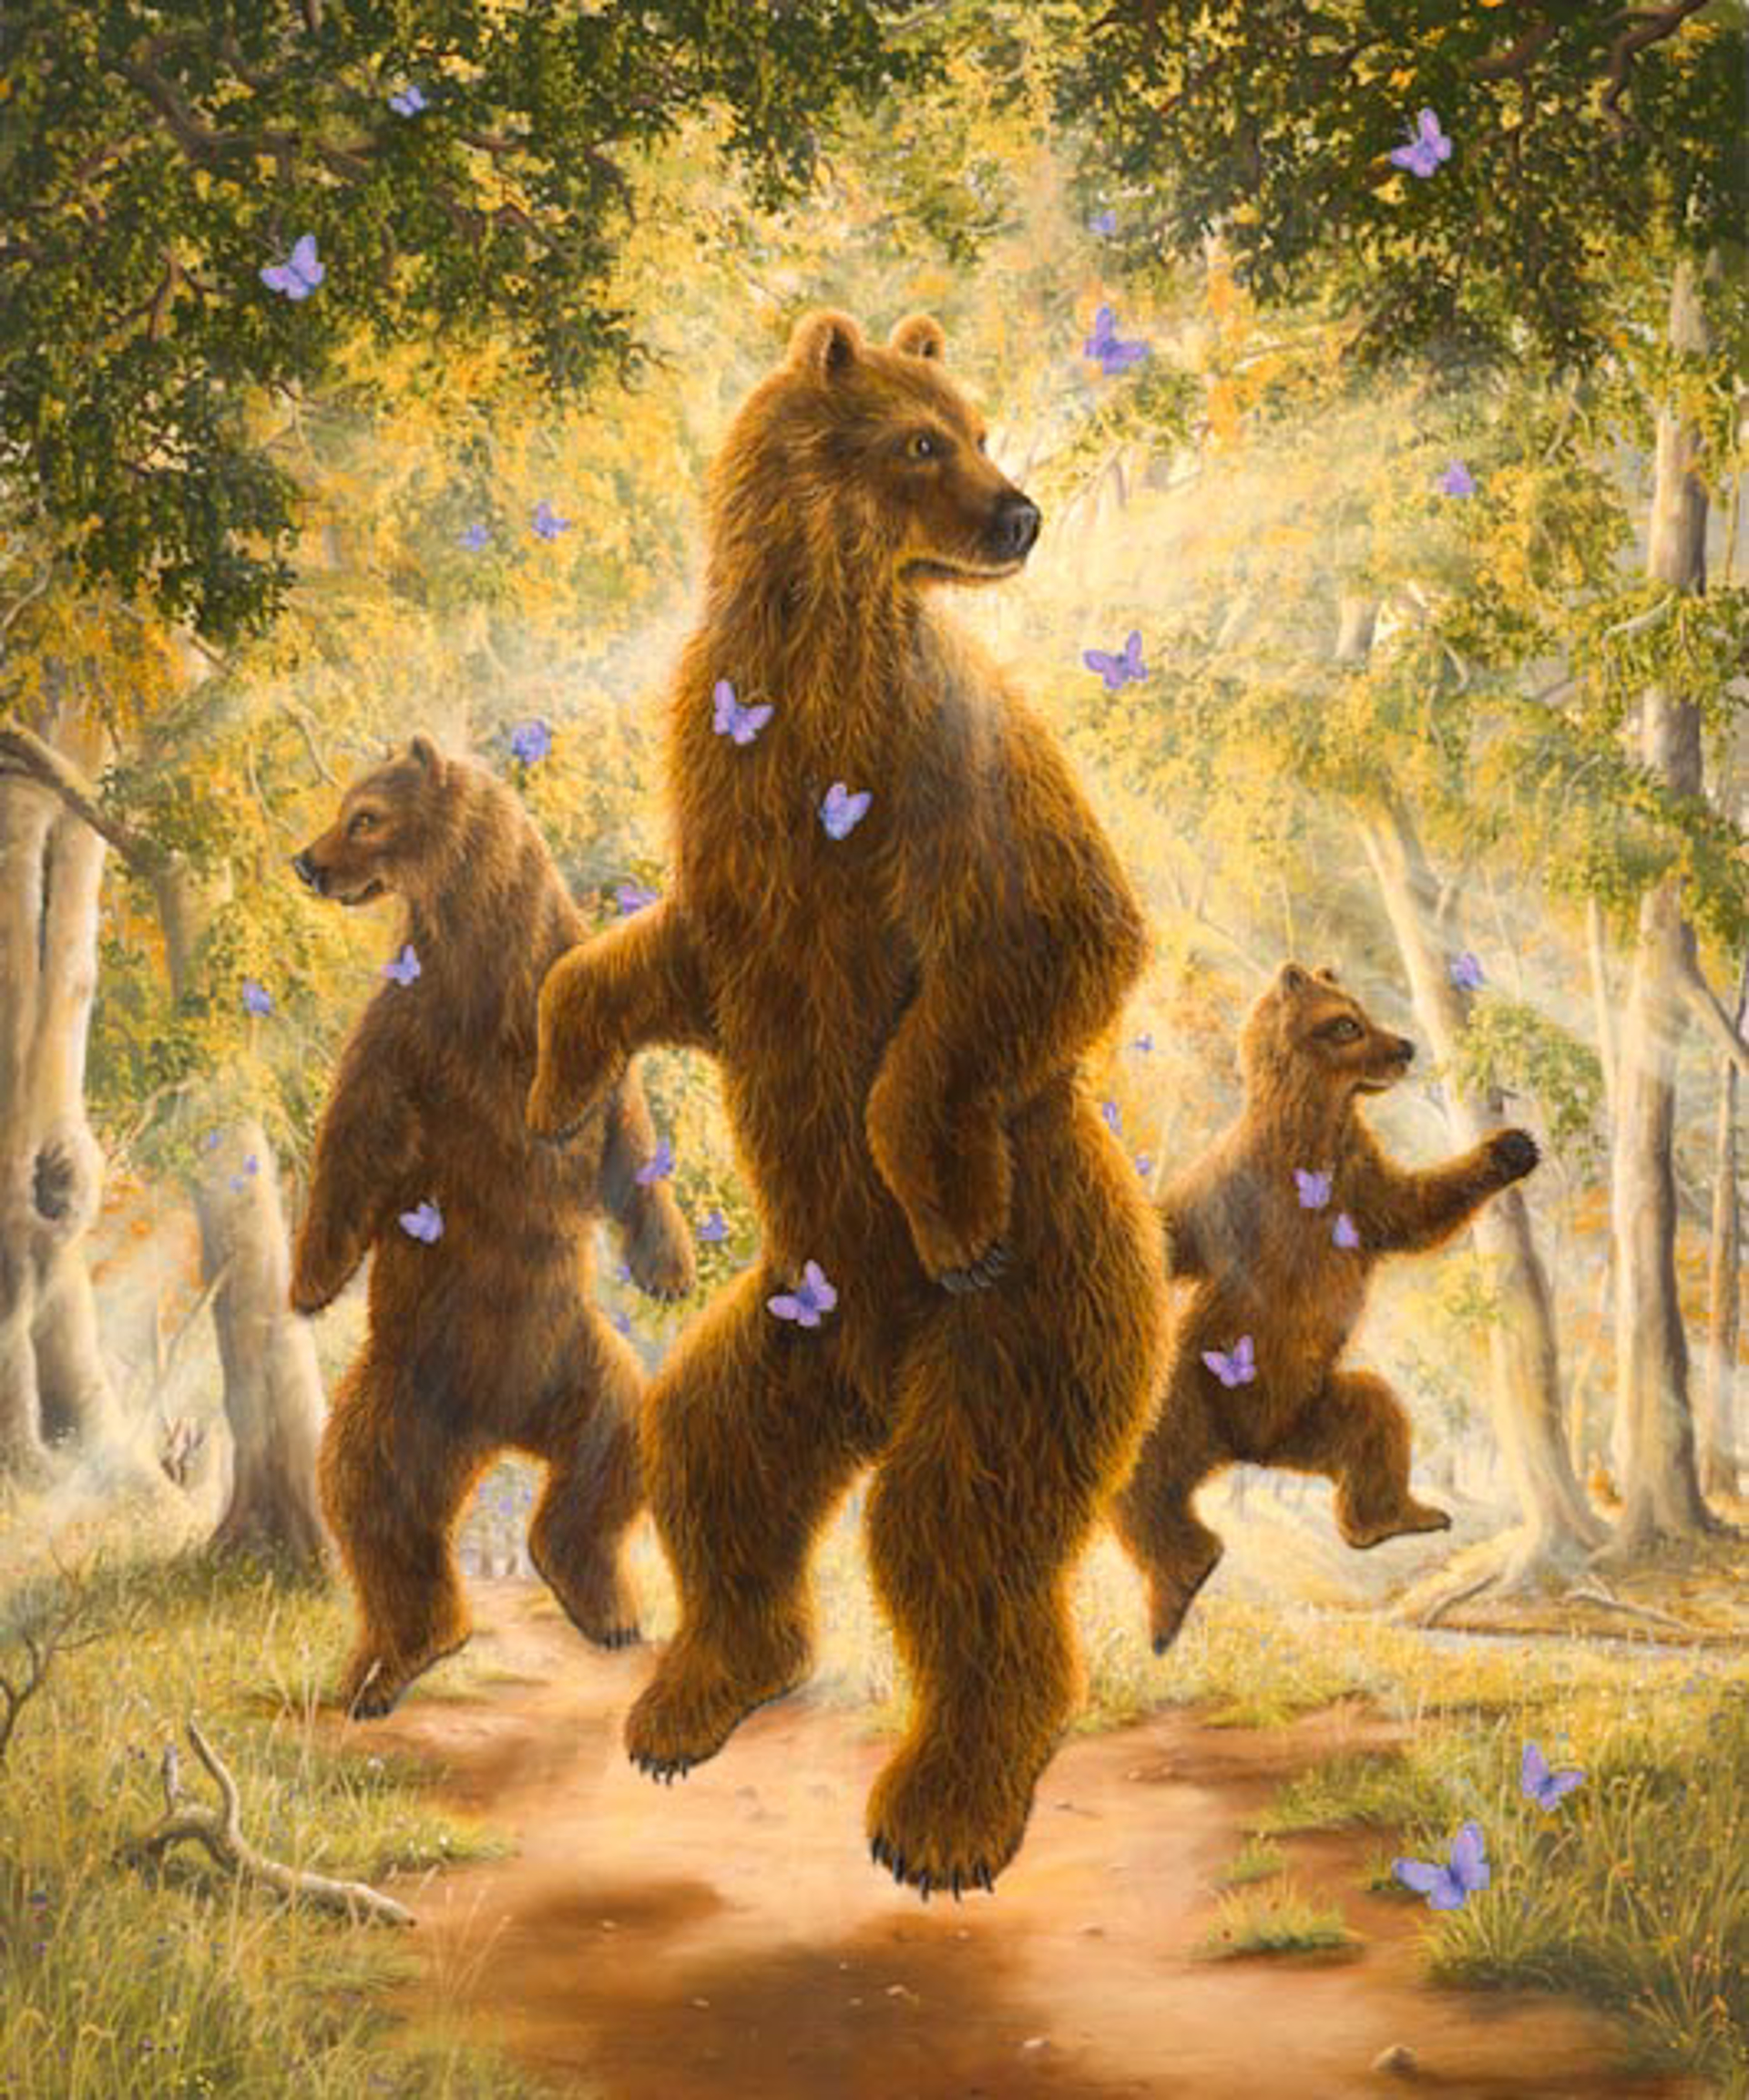 The Dancers by Robert Bissell